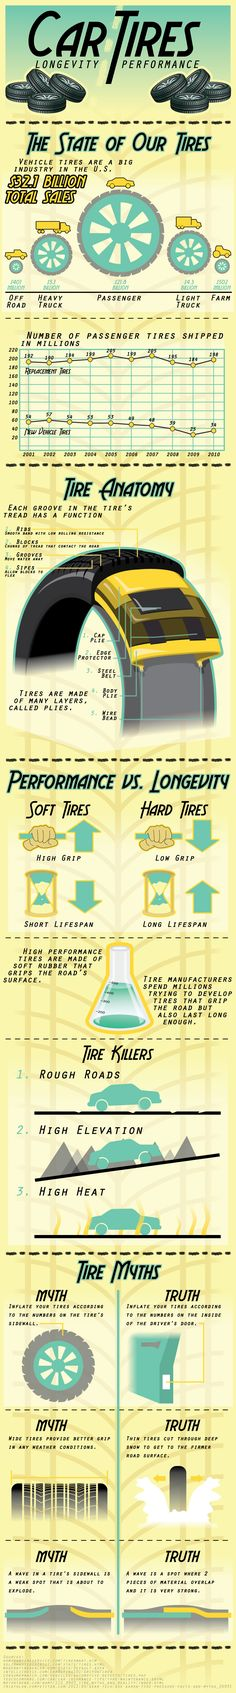 Car tires Infographic